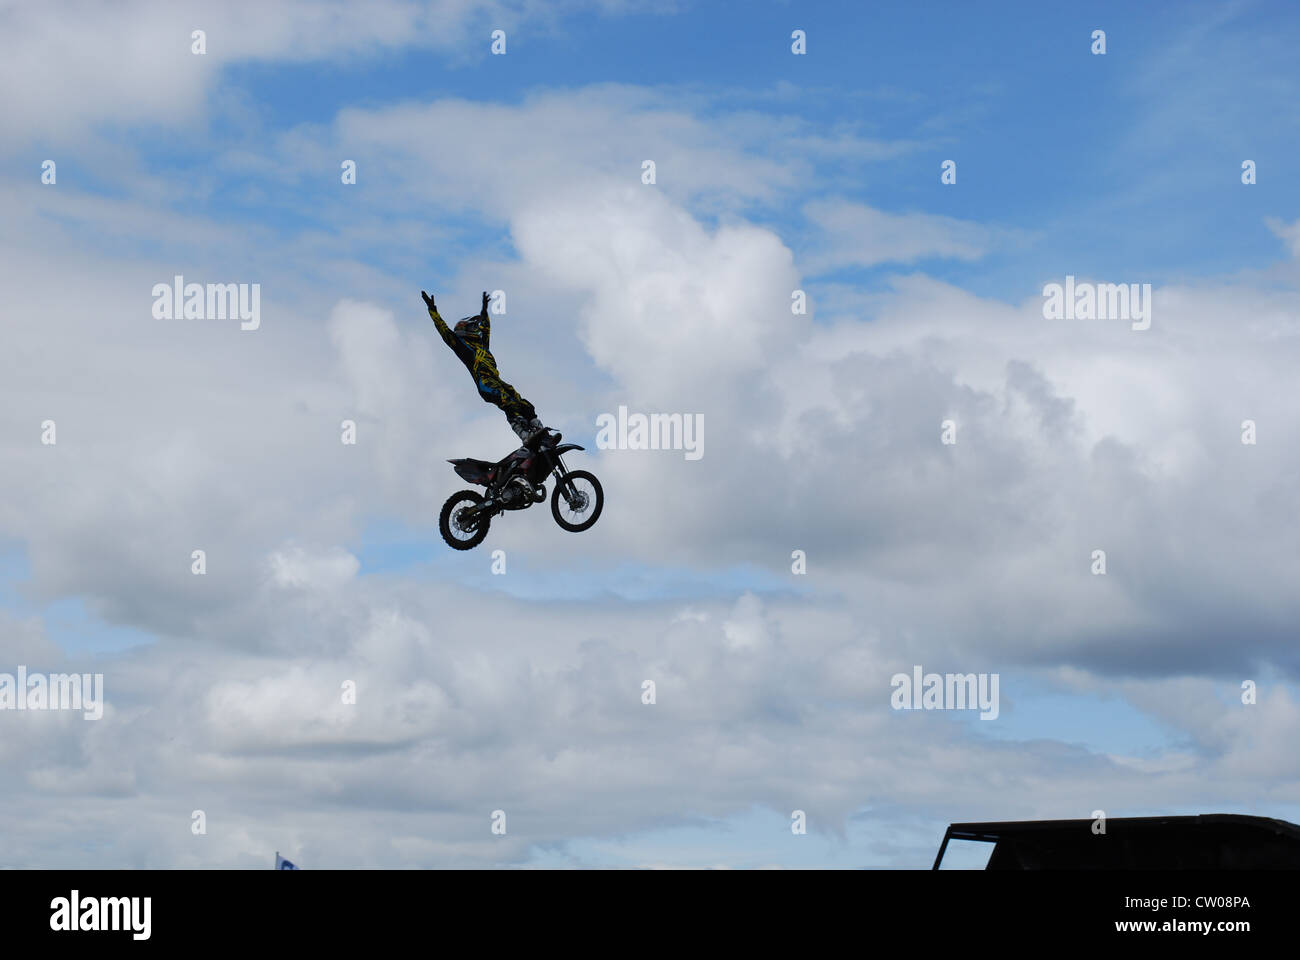 I took this while at a truck show in Scotland of a stunman jumping ramps. Stock Photo